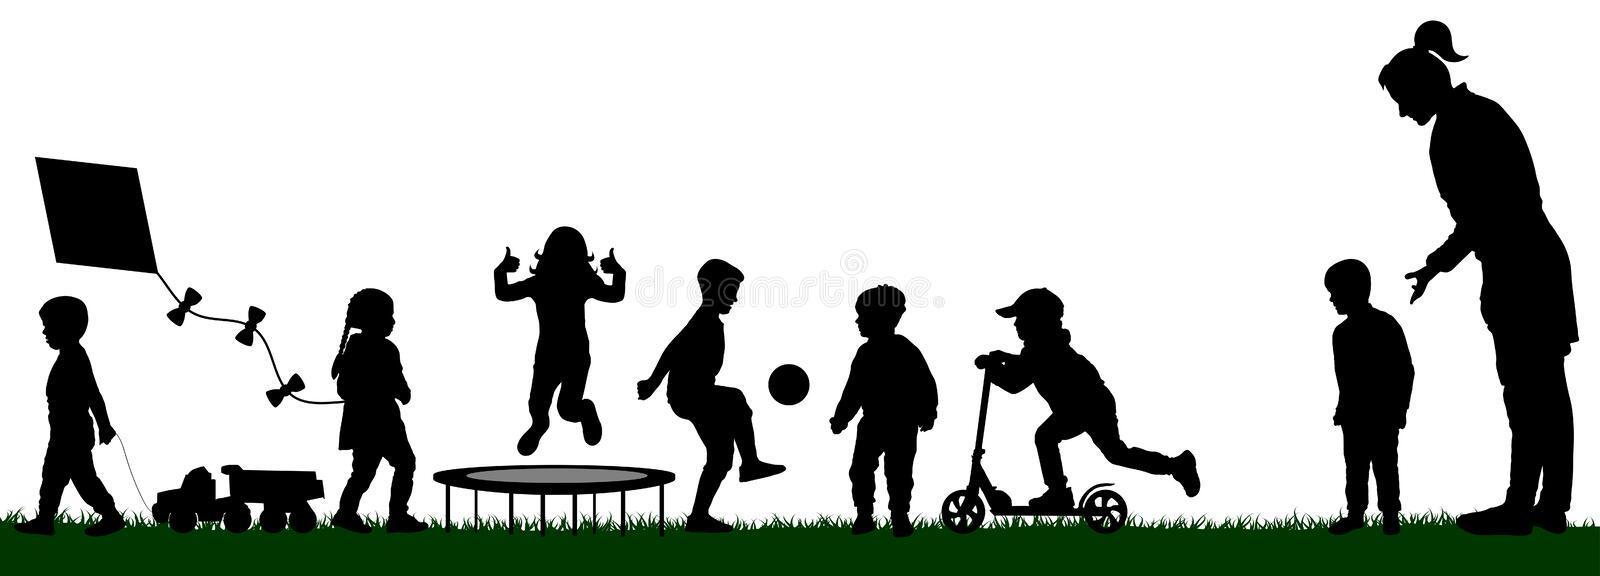 Kindergarten with playing children. Socialization of children. Playground with kids silhouette vector. Mom pushes her son to play royalty free illustration